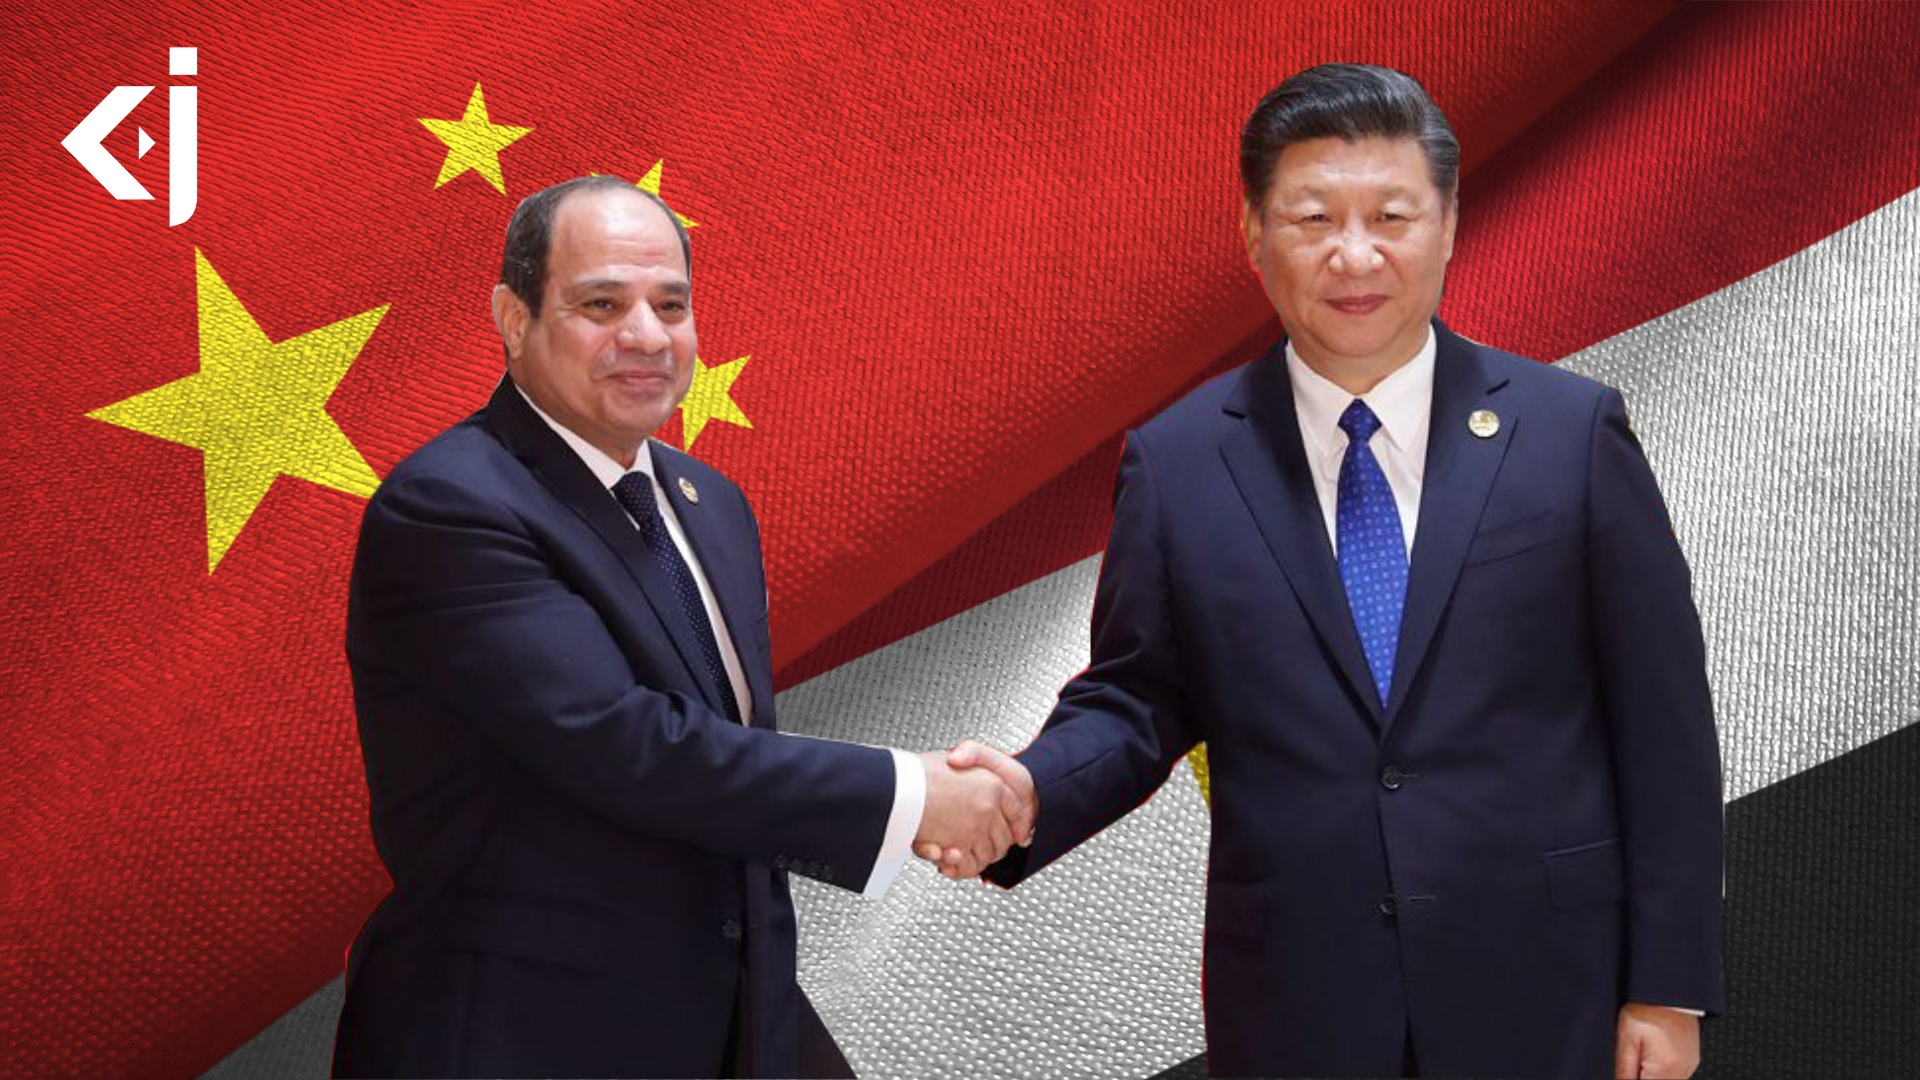 Egypt and China's Growing Economic Bond: 5 Geopolitical Effects You Need to Know